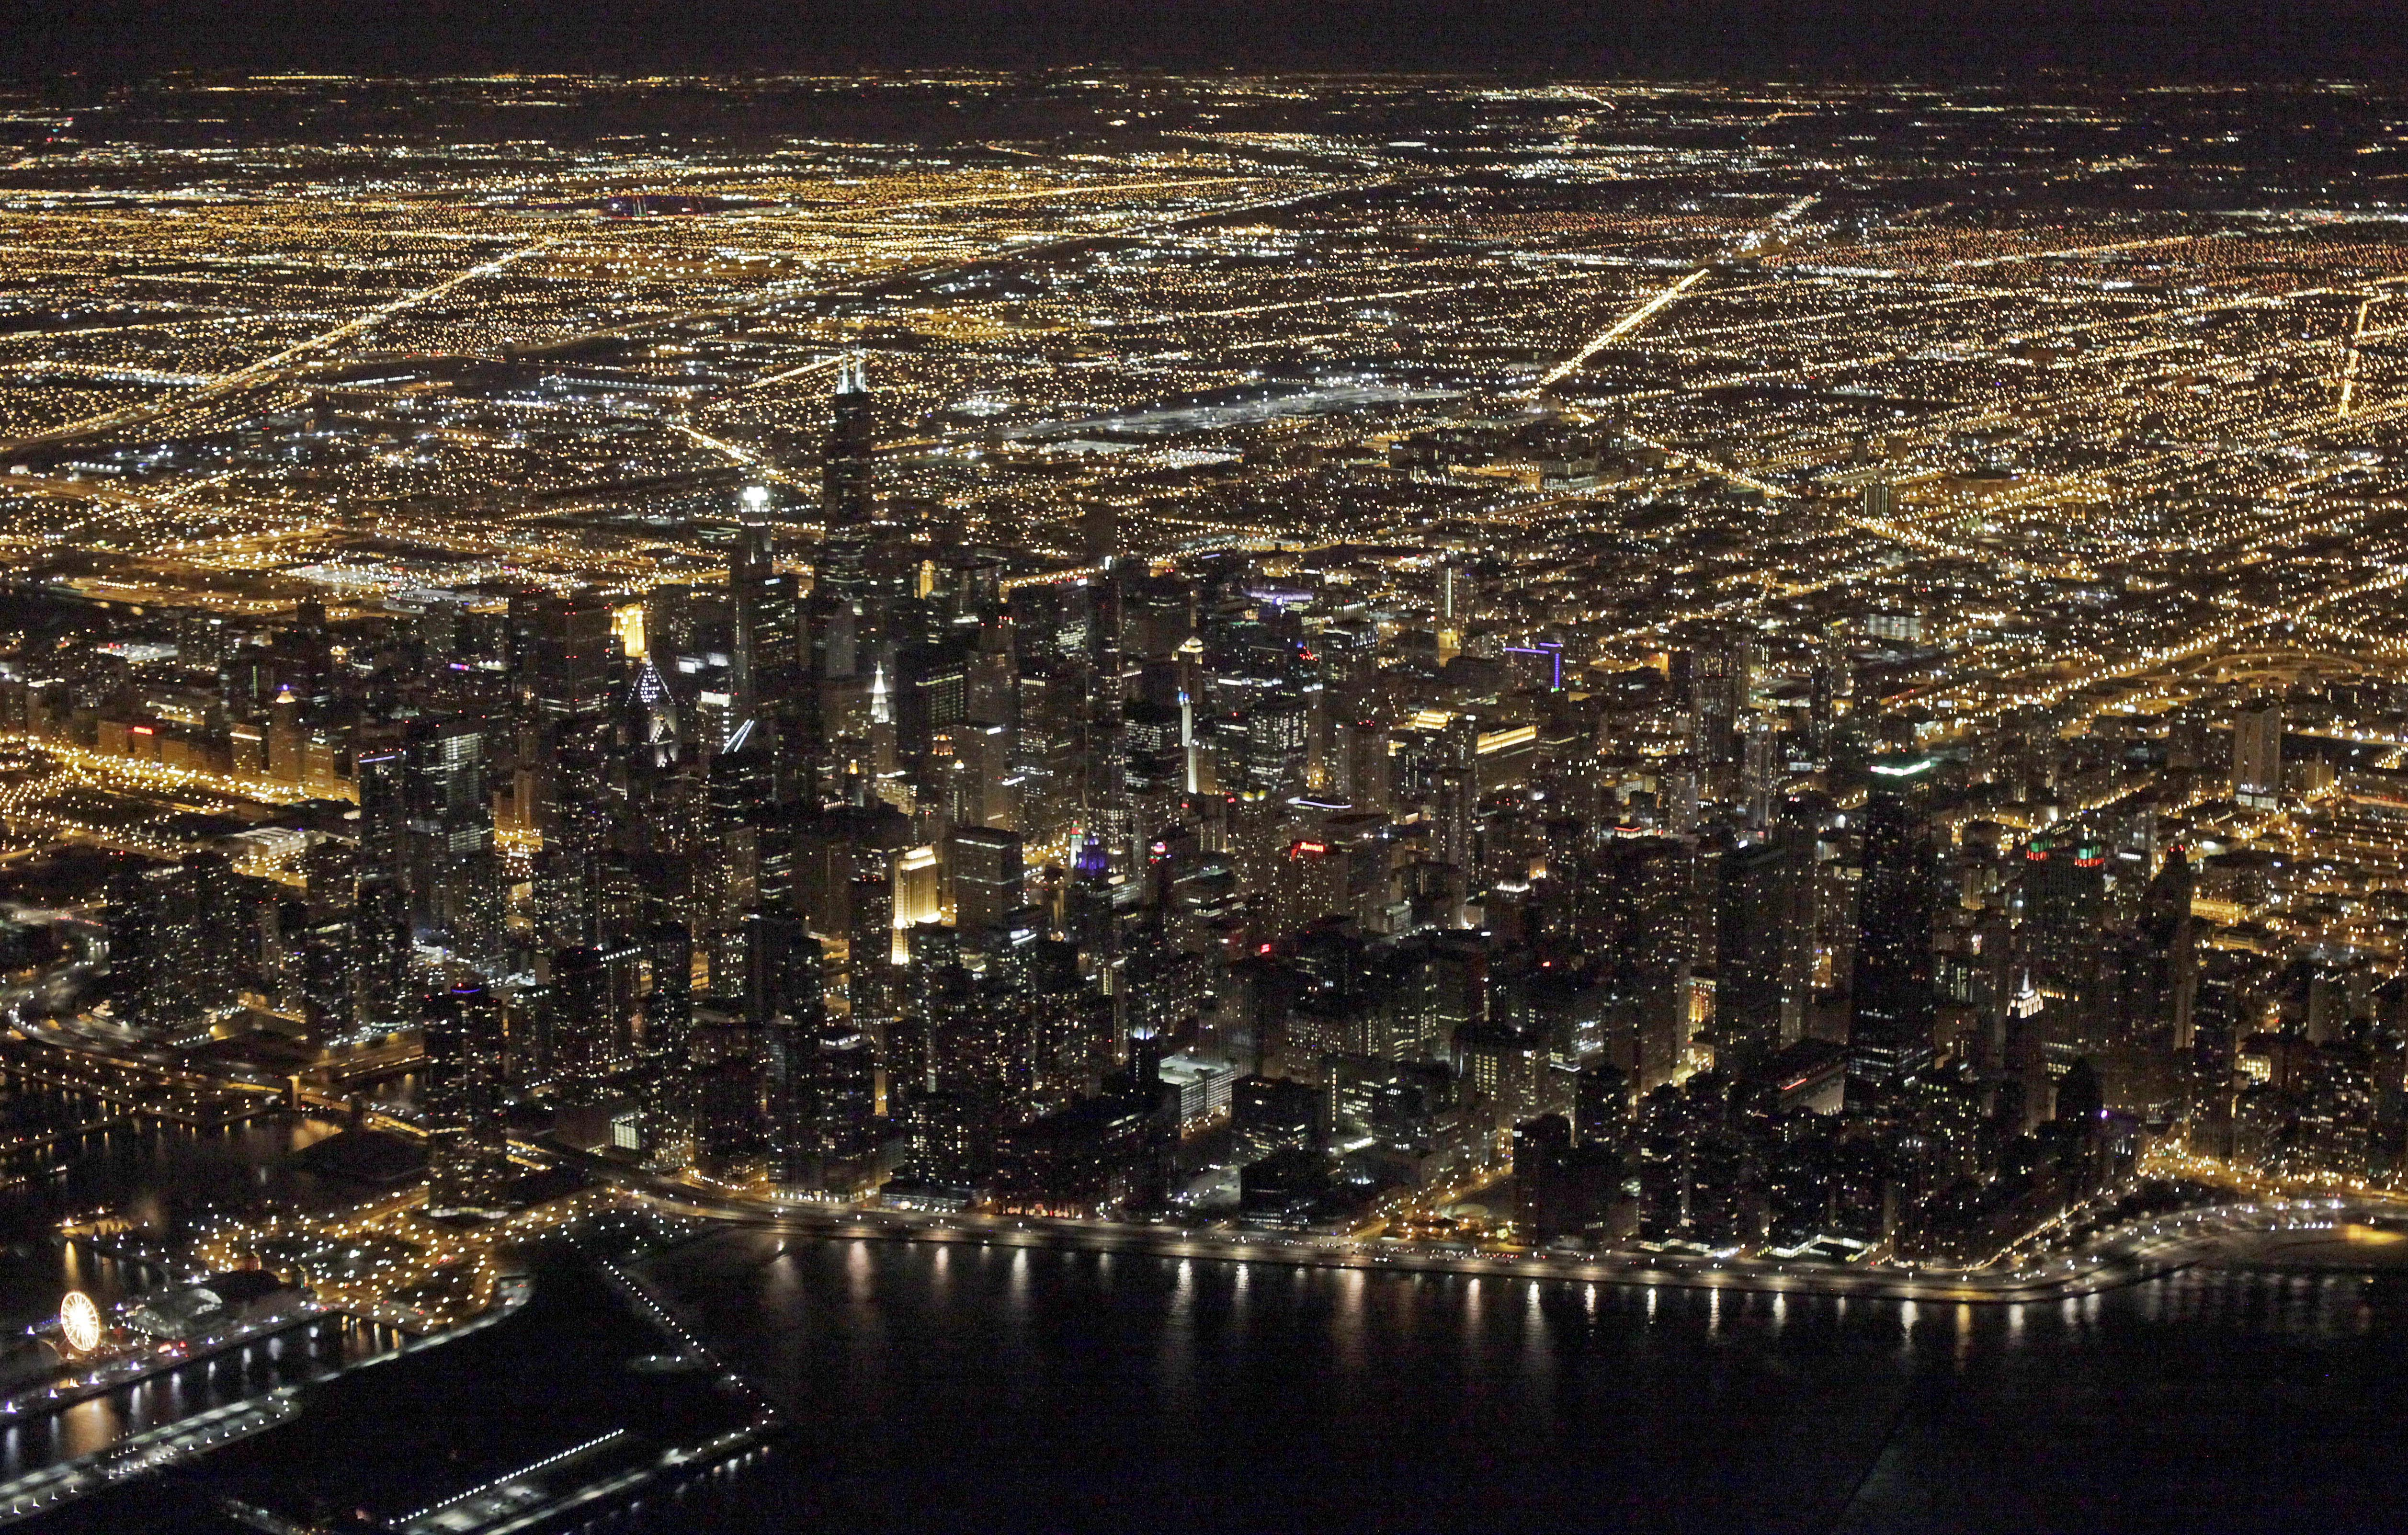 This 2013 file photo shows an aerial view at night of the downtown Chicago skyline. Star Wars creator George Lucas has selected Chicago to build his museum of art and movie memorabilia